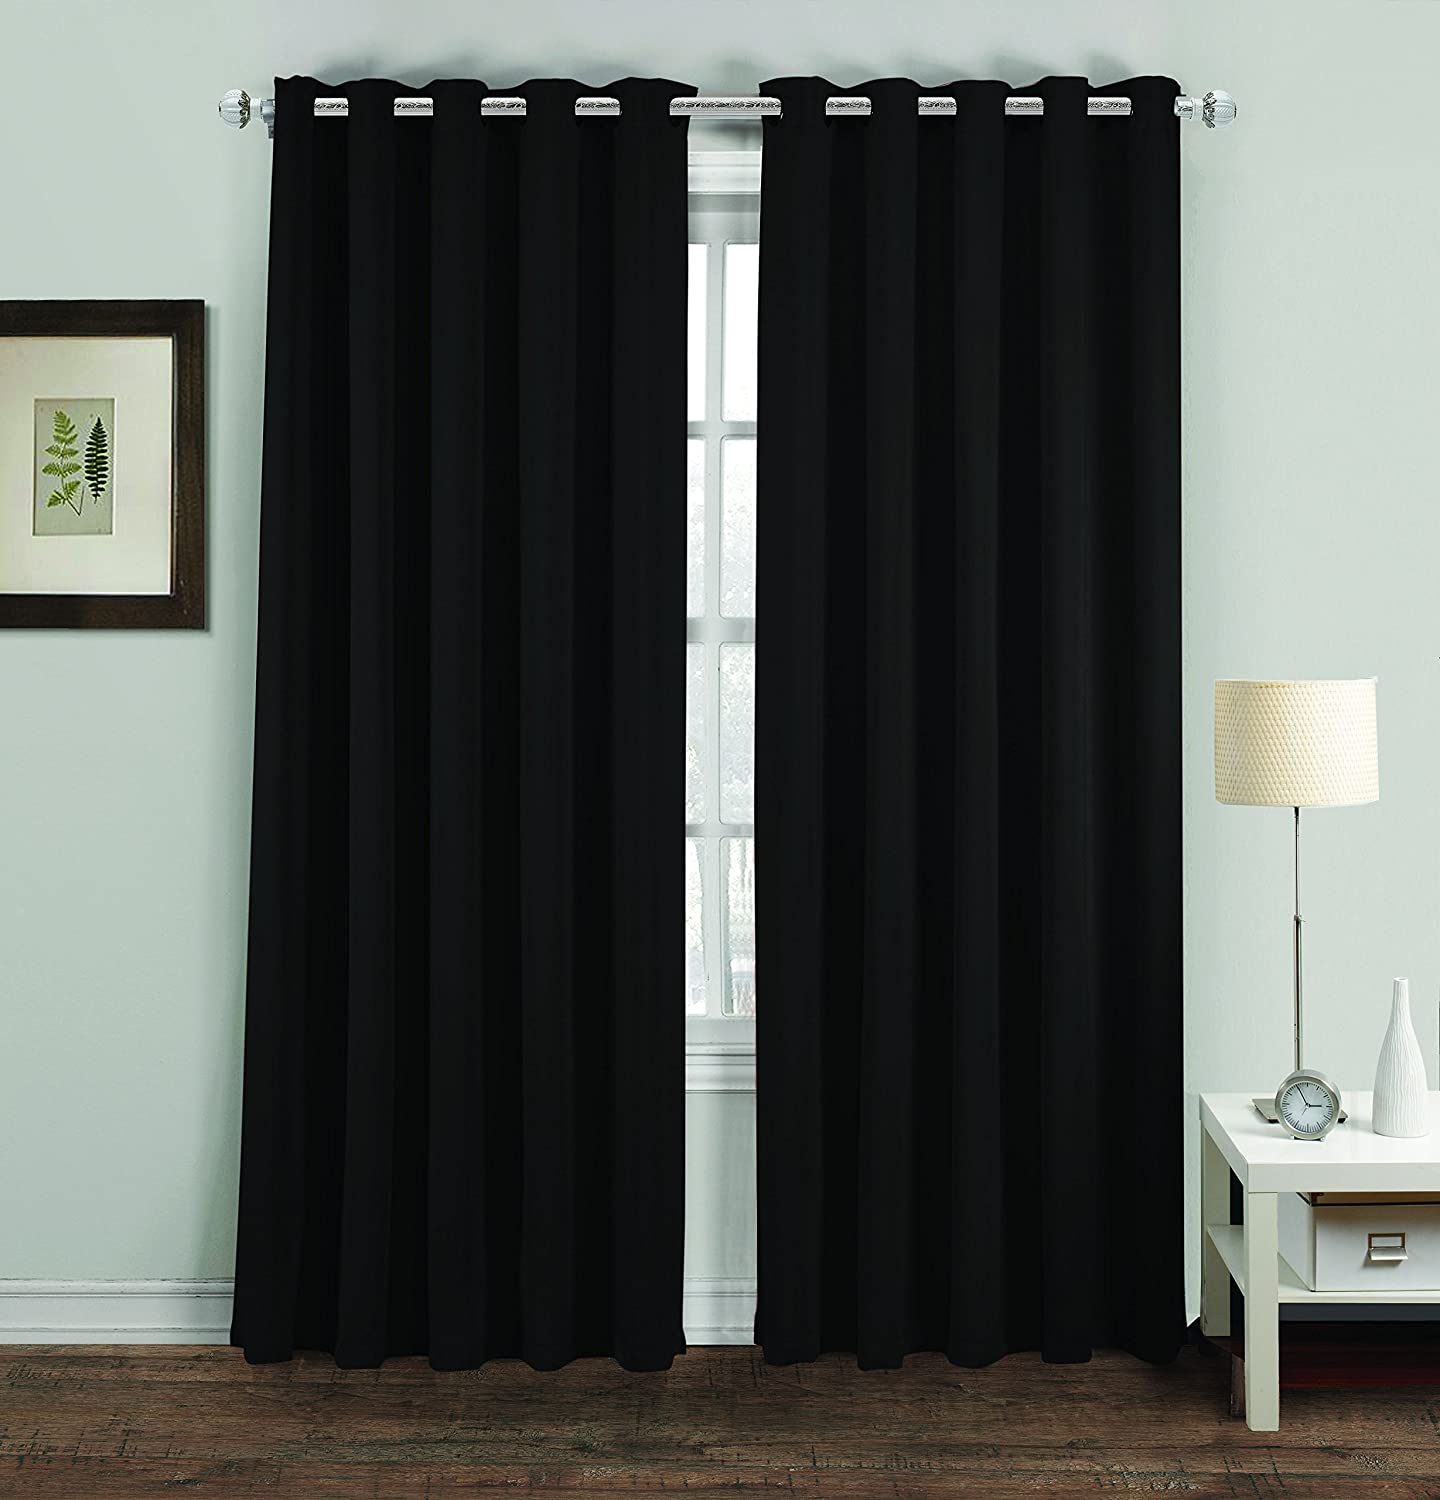 MH Distributions Luxury Thermal Supersoft Blackout Curtains Pair Eyelet Ring Top UAREHOME (Cushion Covers 18x18 Inches, Black) MH Distributions LTD